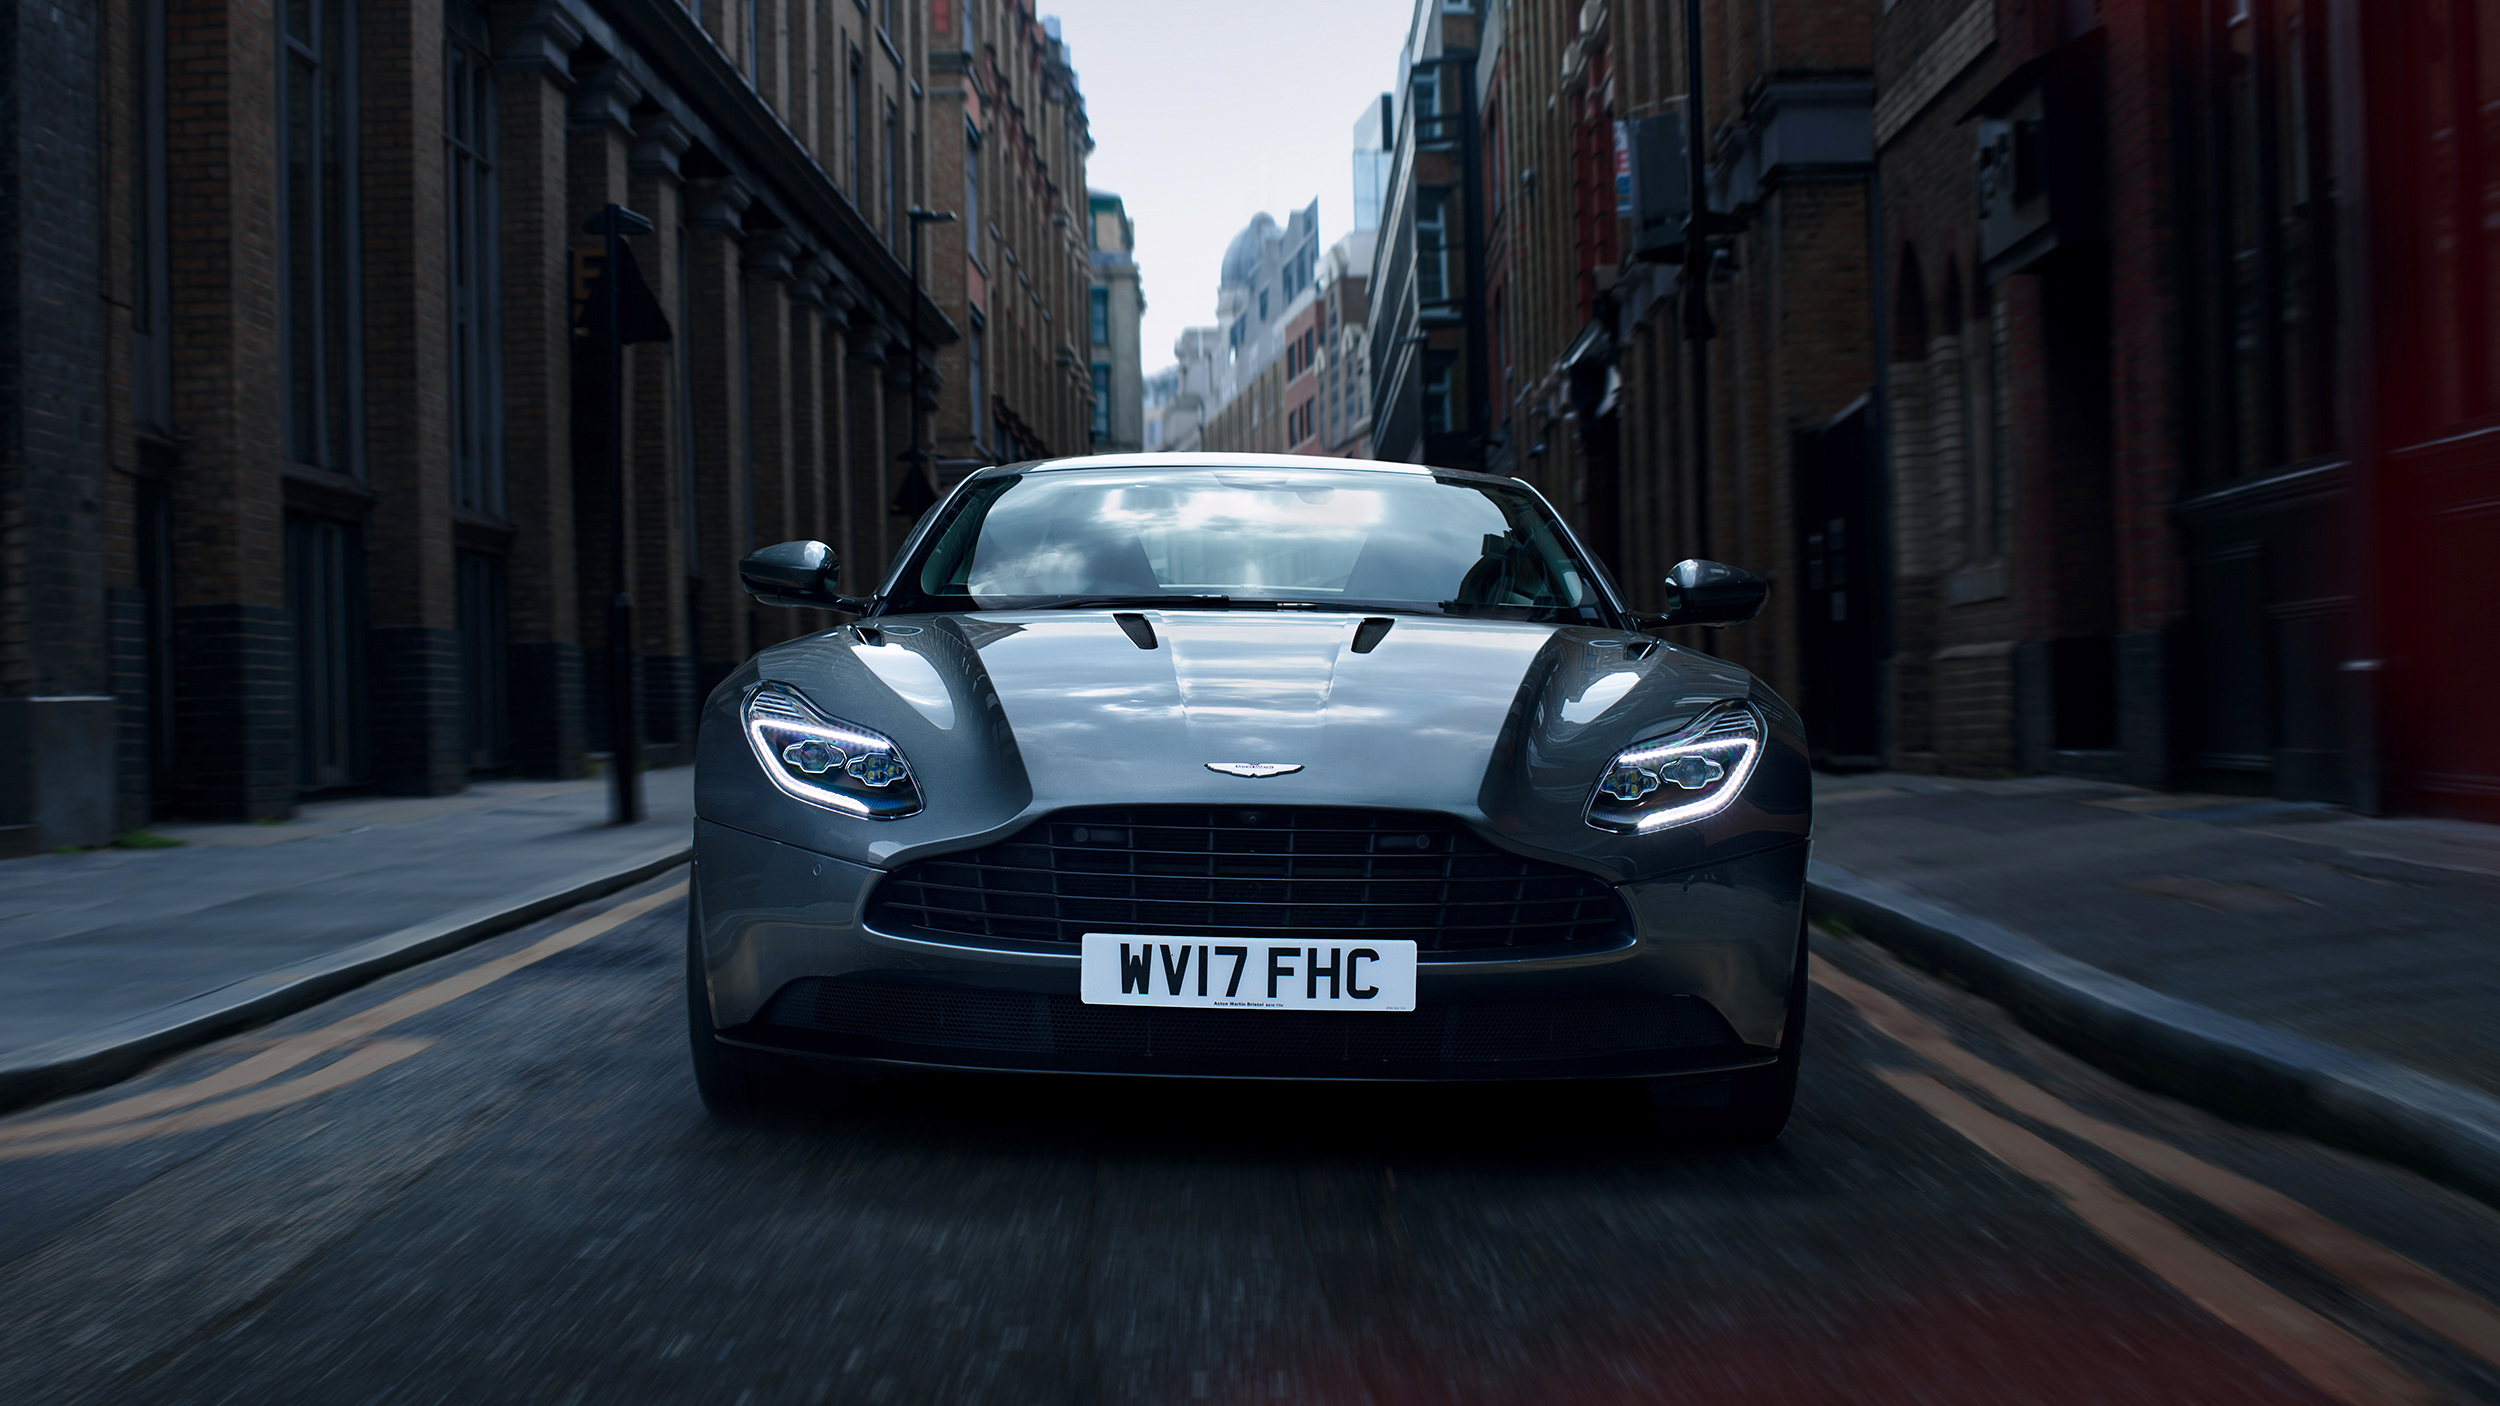 Marc_Trautmann_Aston_Martin_DB11_London_2_red_elements copy-brighter